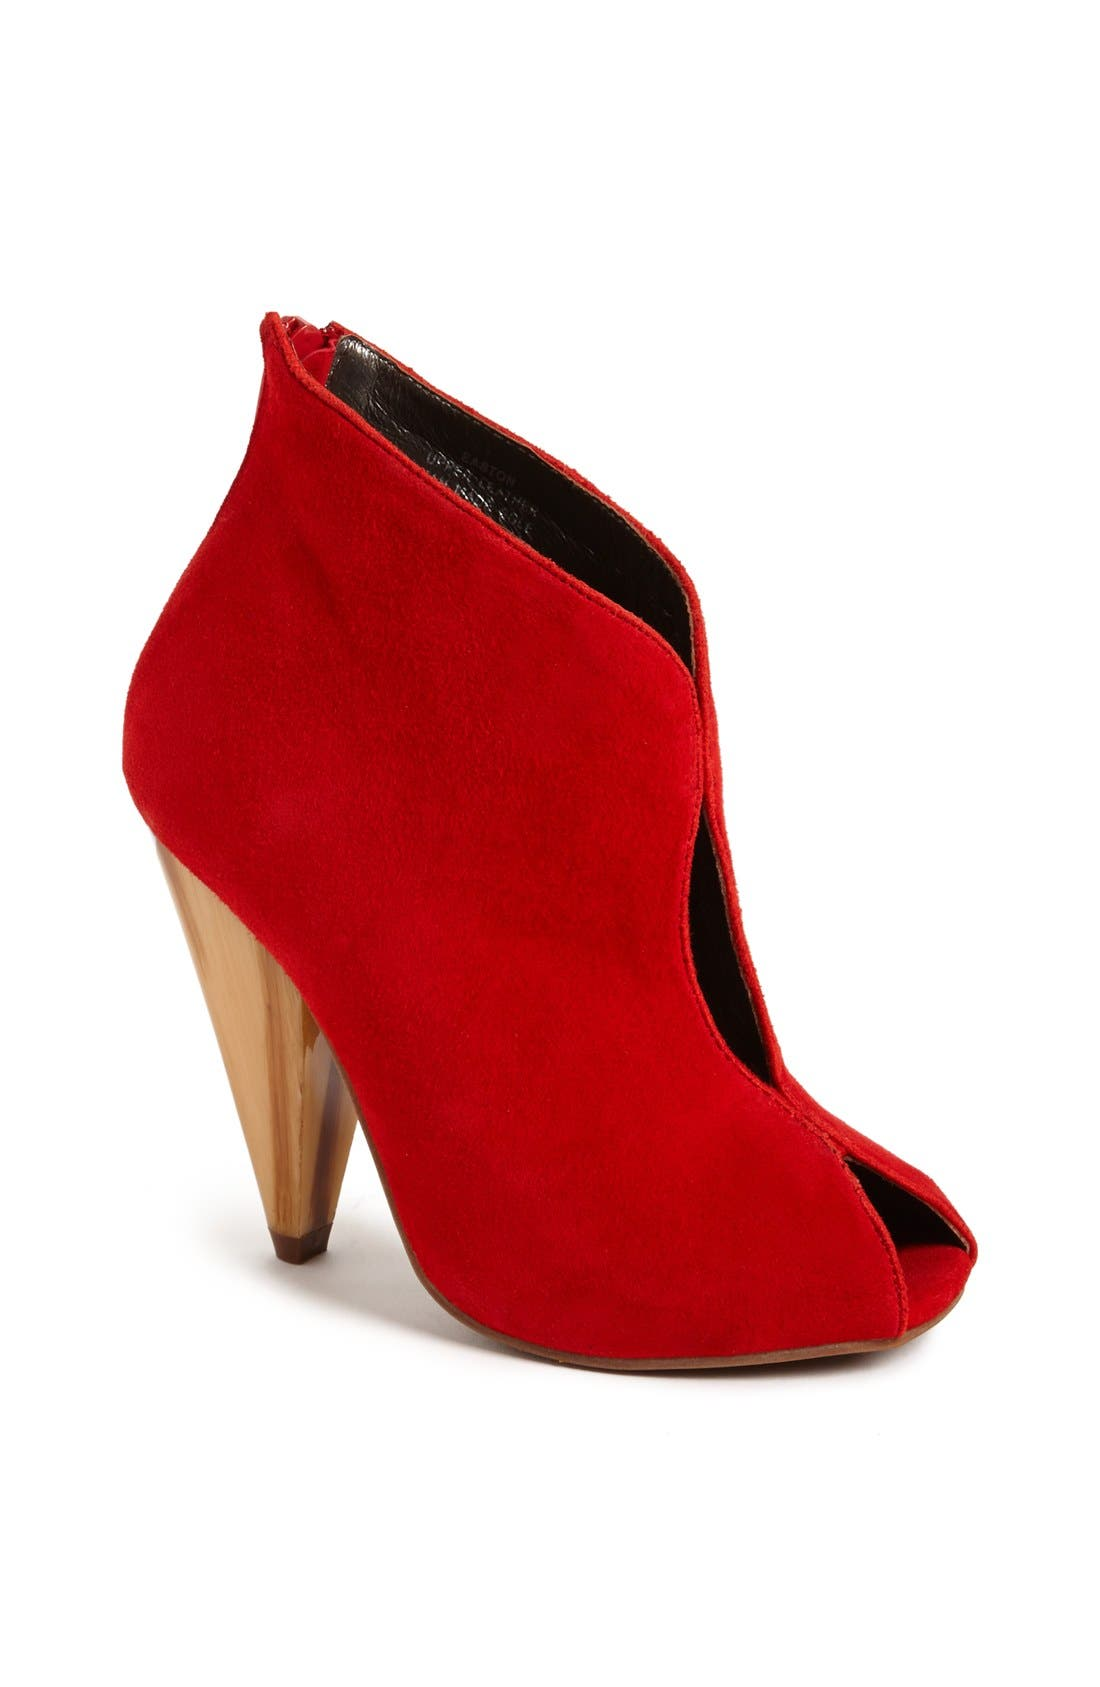 Alternate Image 1 Selected - Jeffrey Campbell 'Easton' Suede Bootie